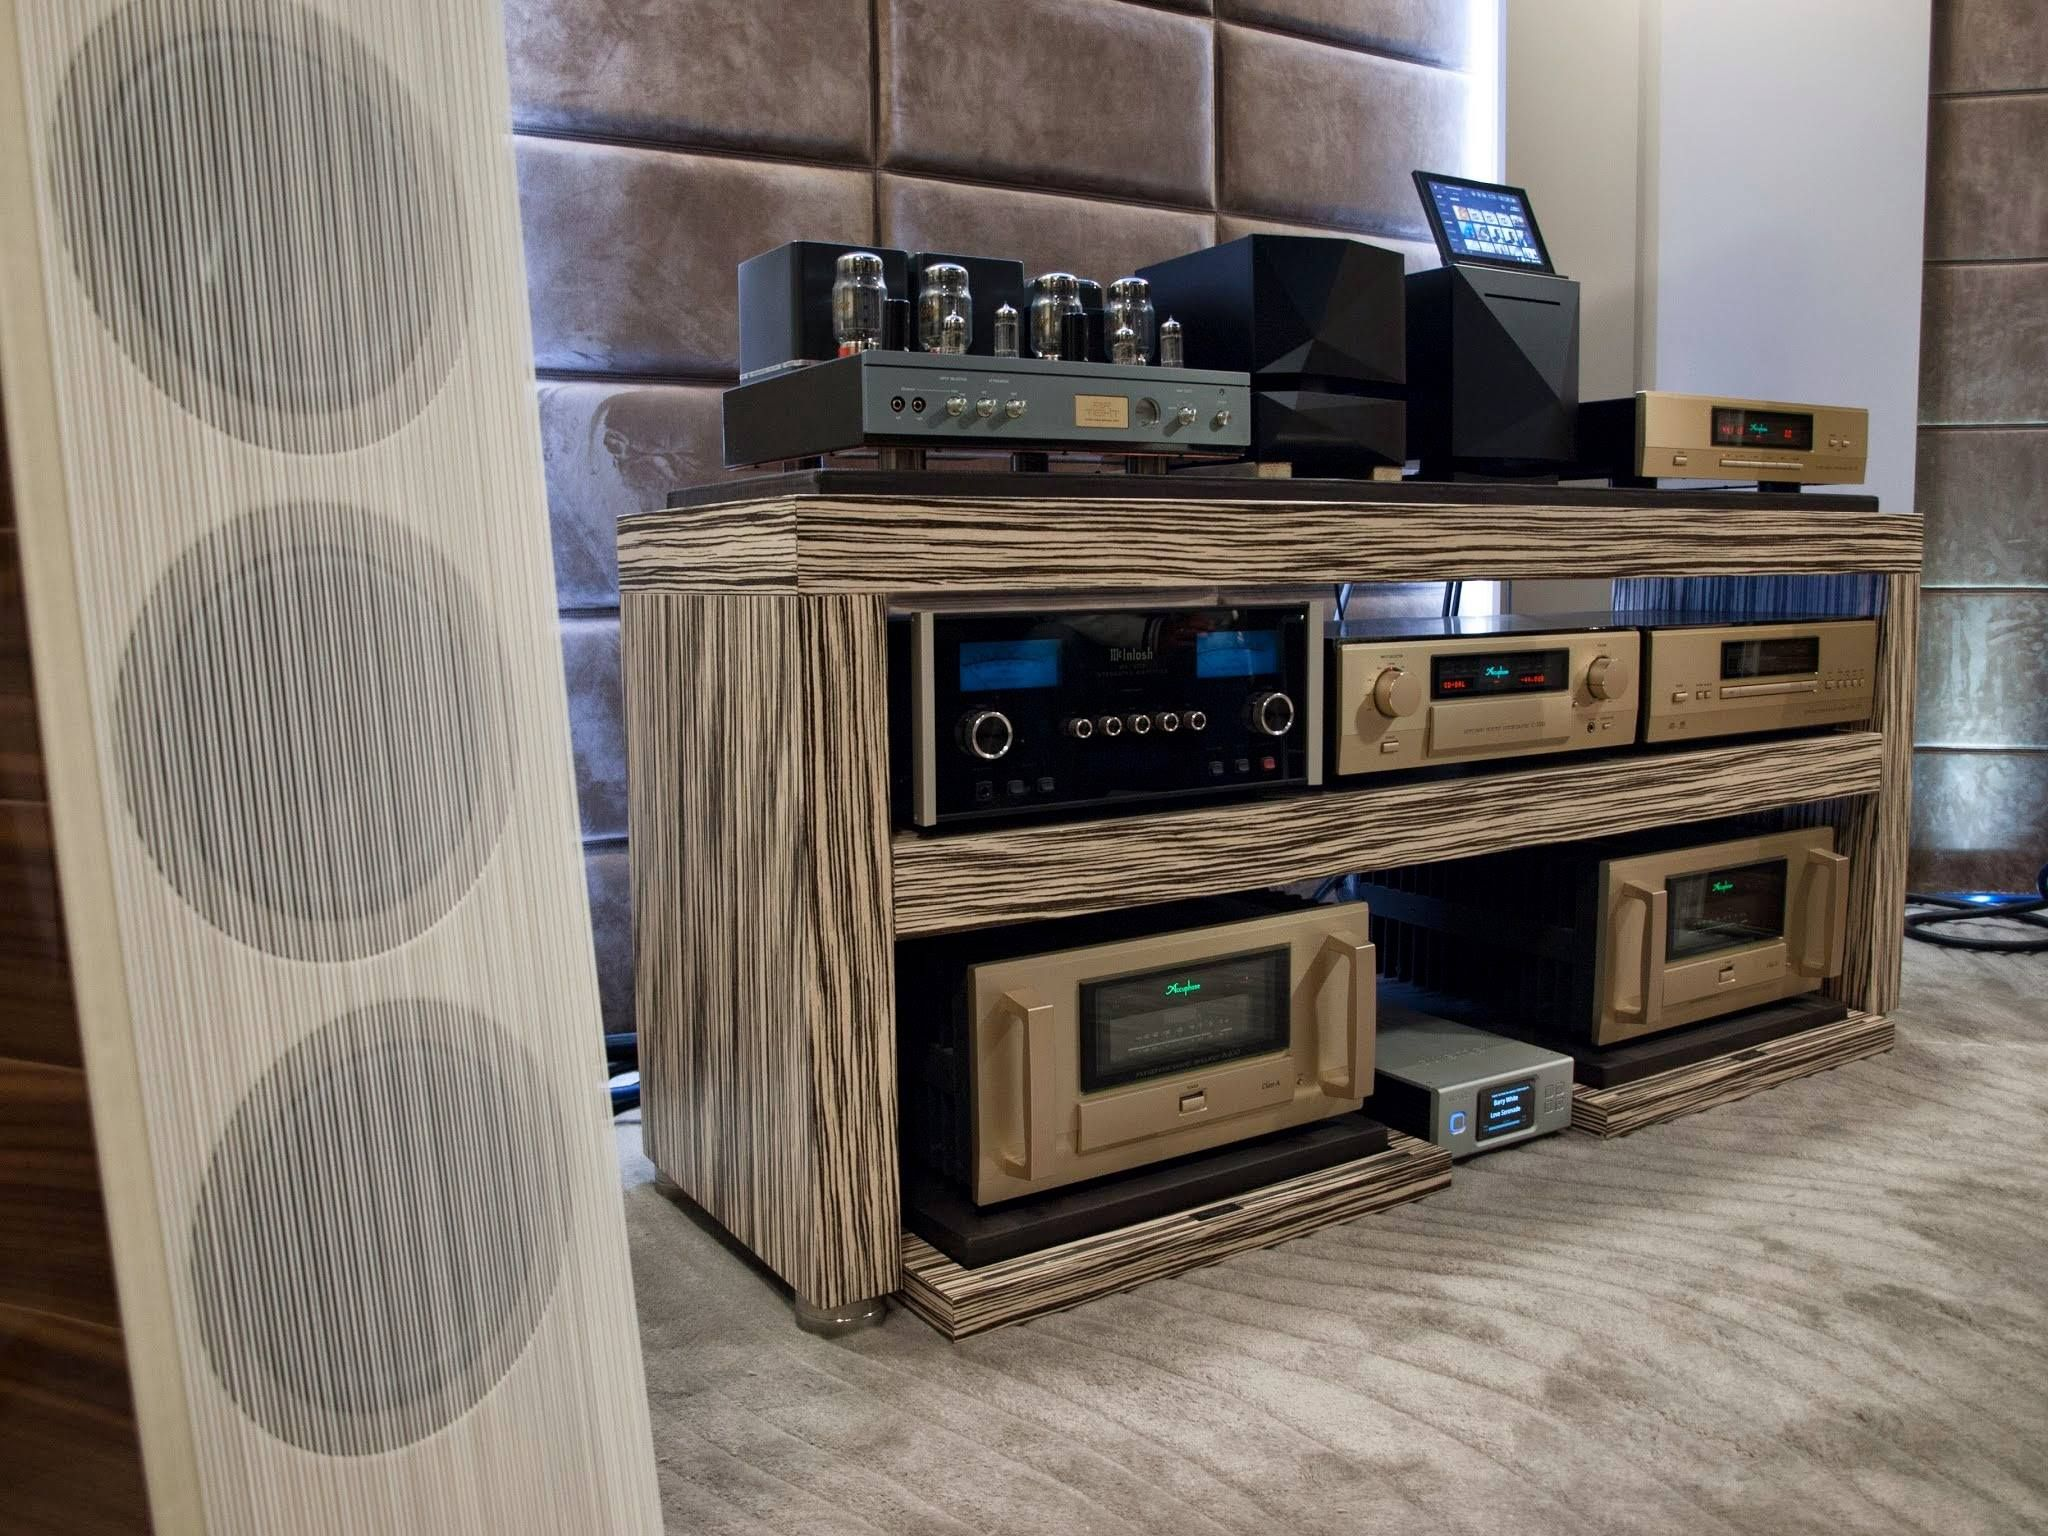 Awesome Bassocontinuo Audio Rack With Accuphase Mcintosh